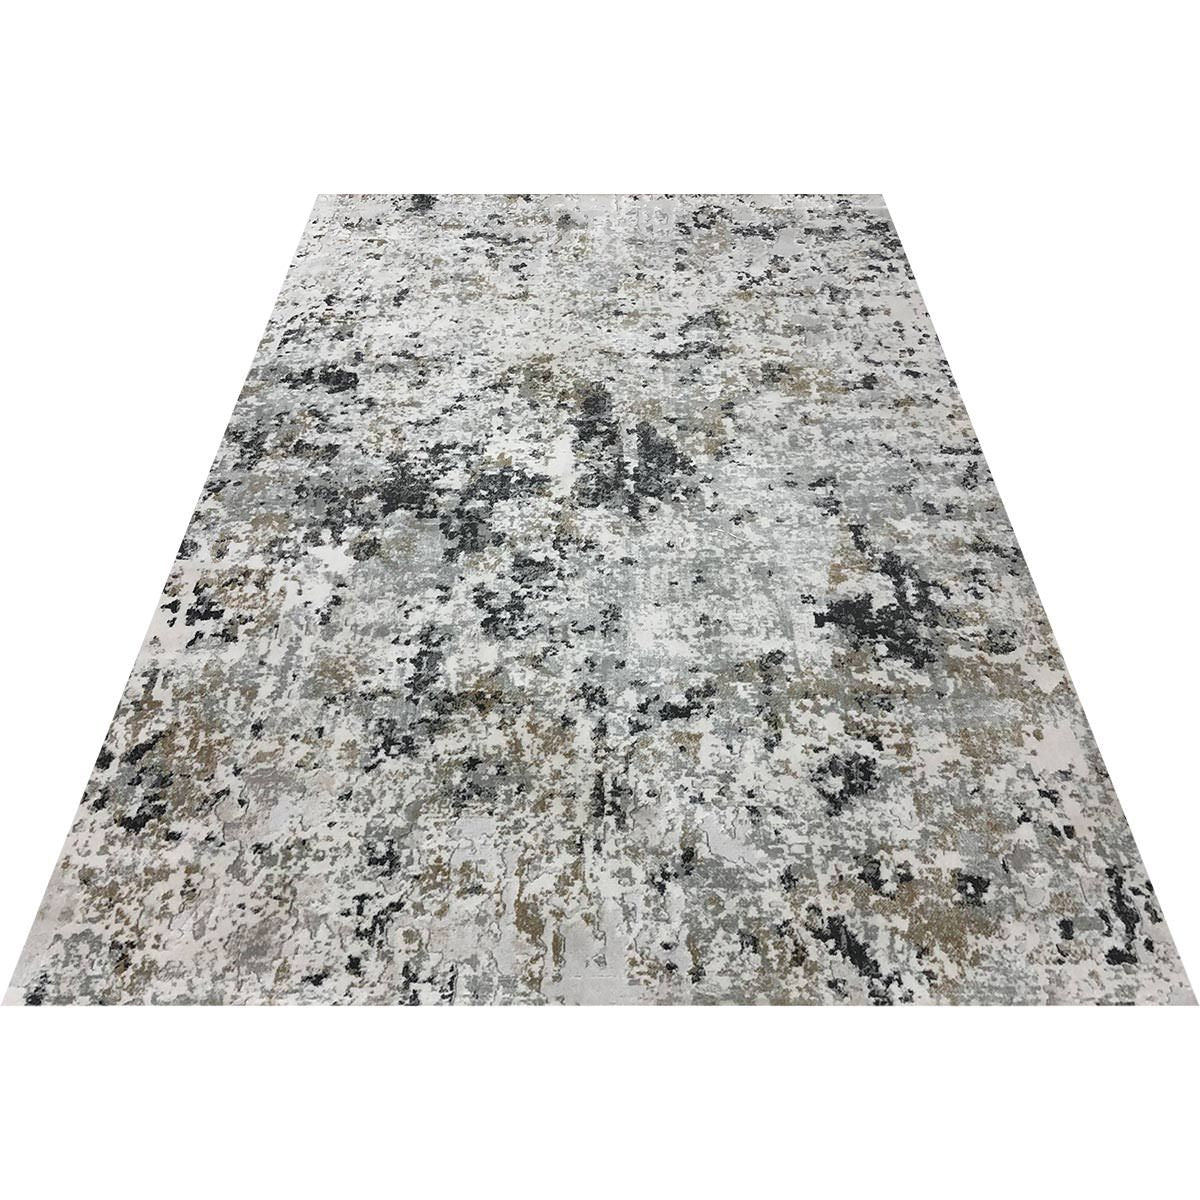 Madrid Rug 07 Grey/Beige 2